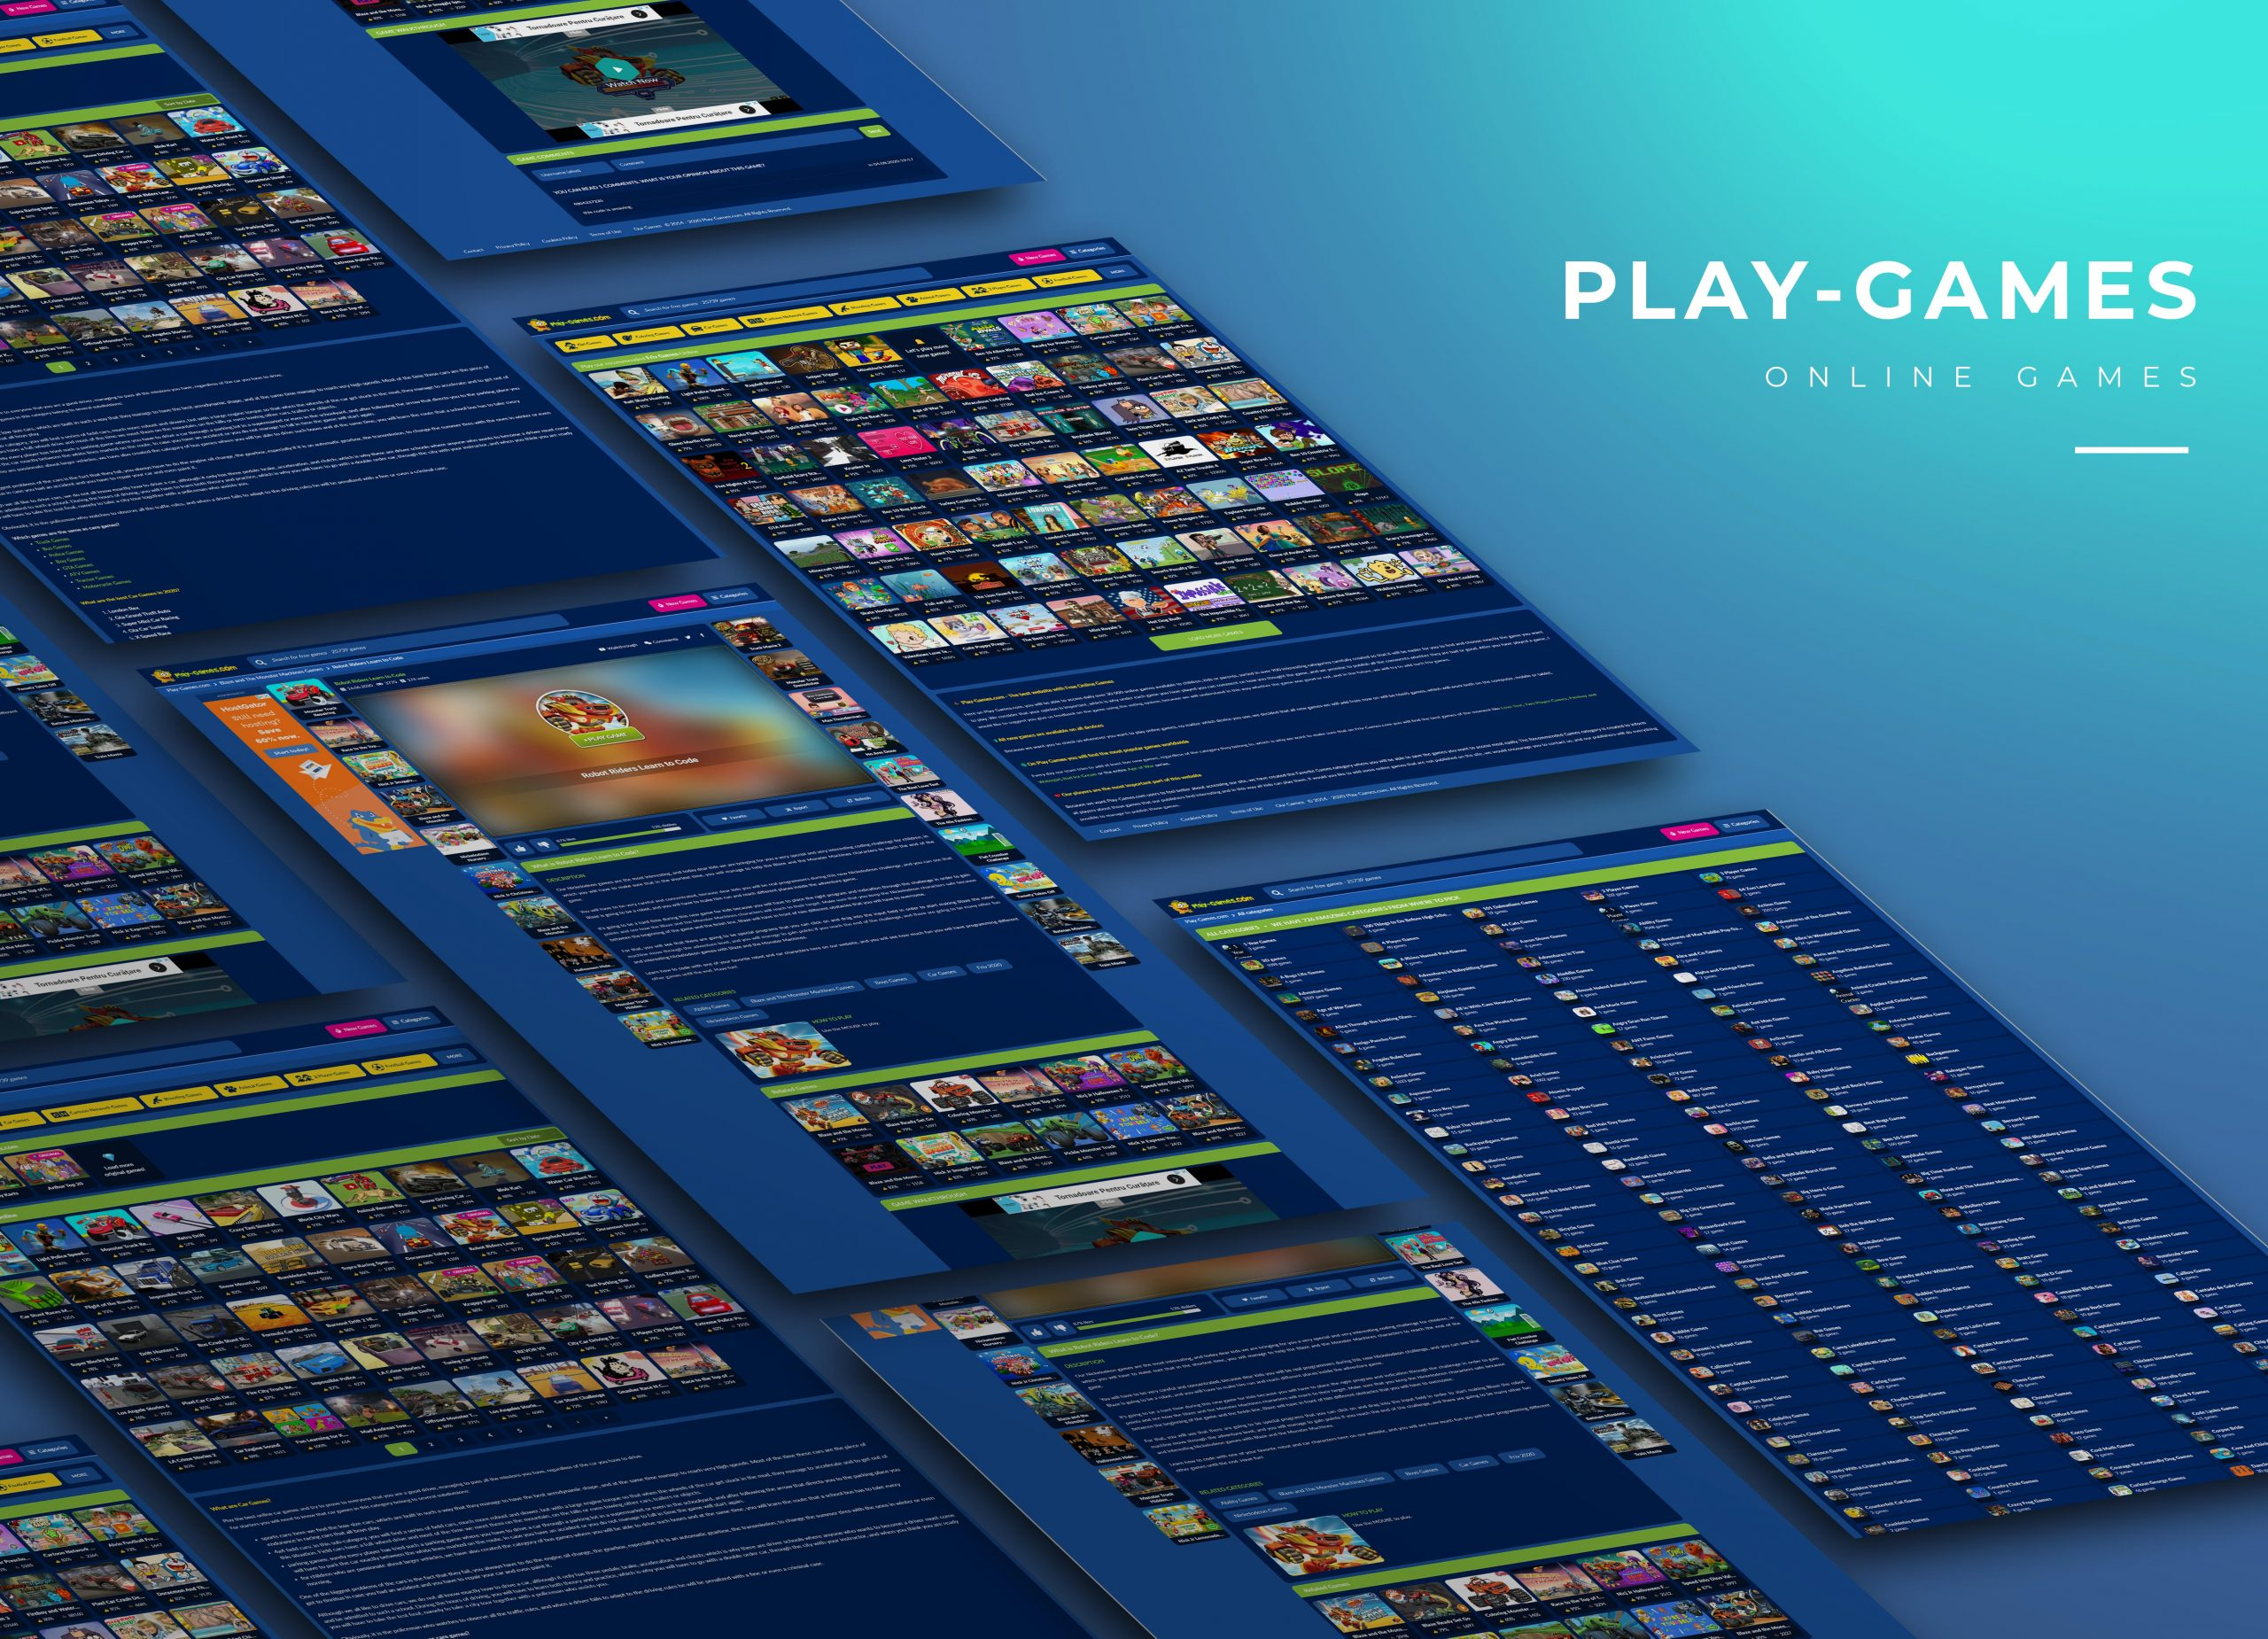 prezentare-site-full-play-games-toate-paginile